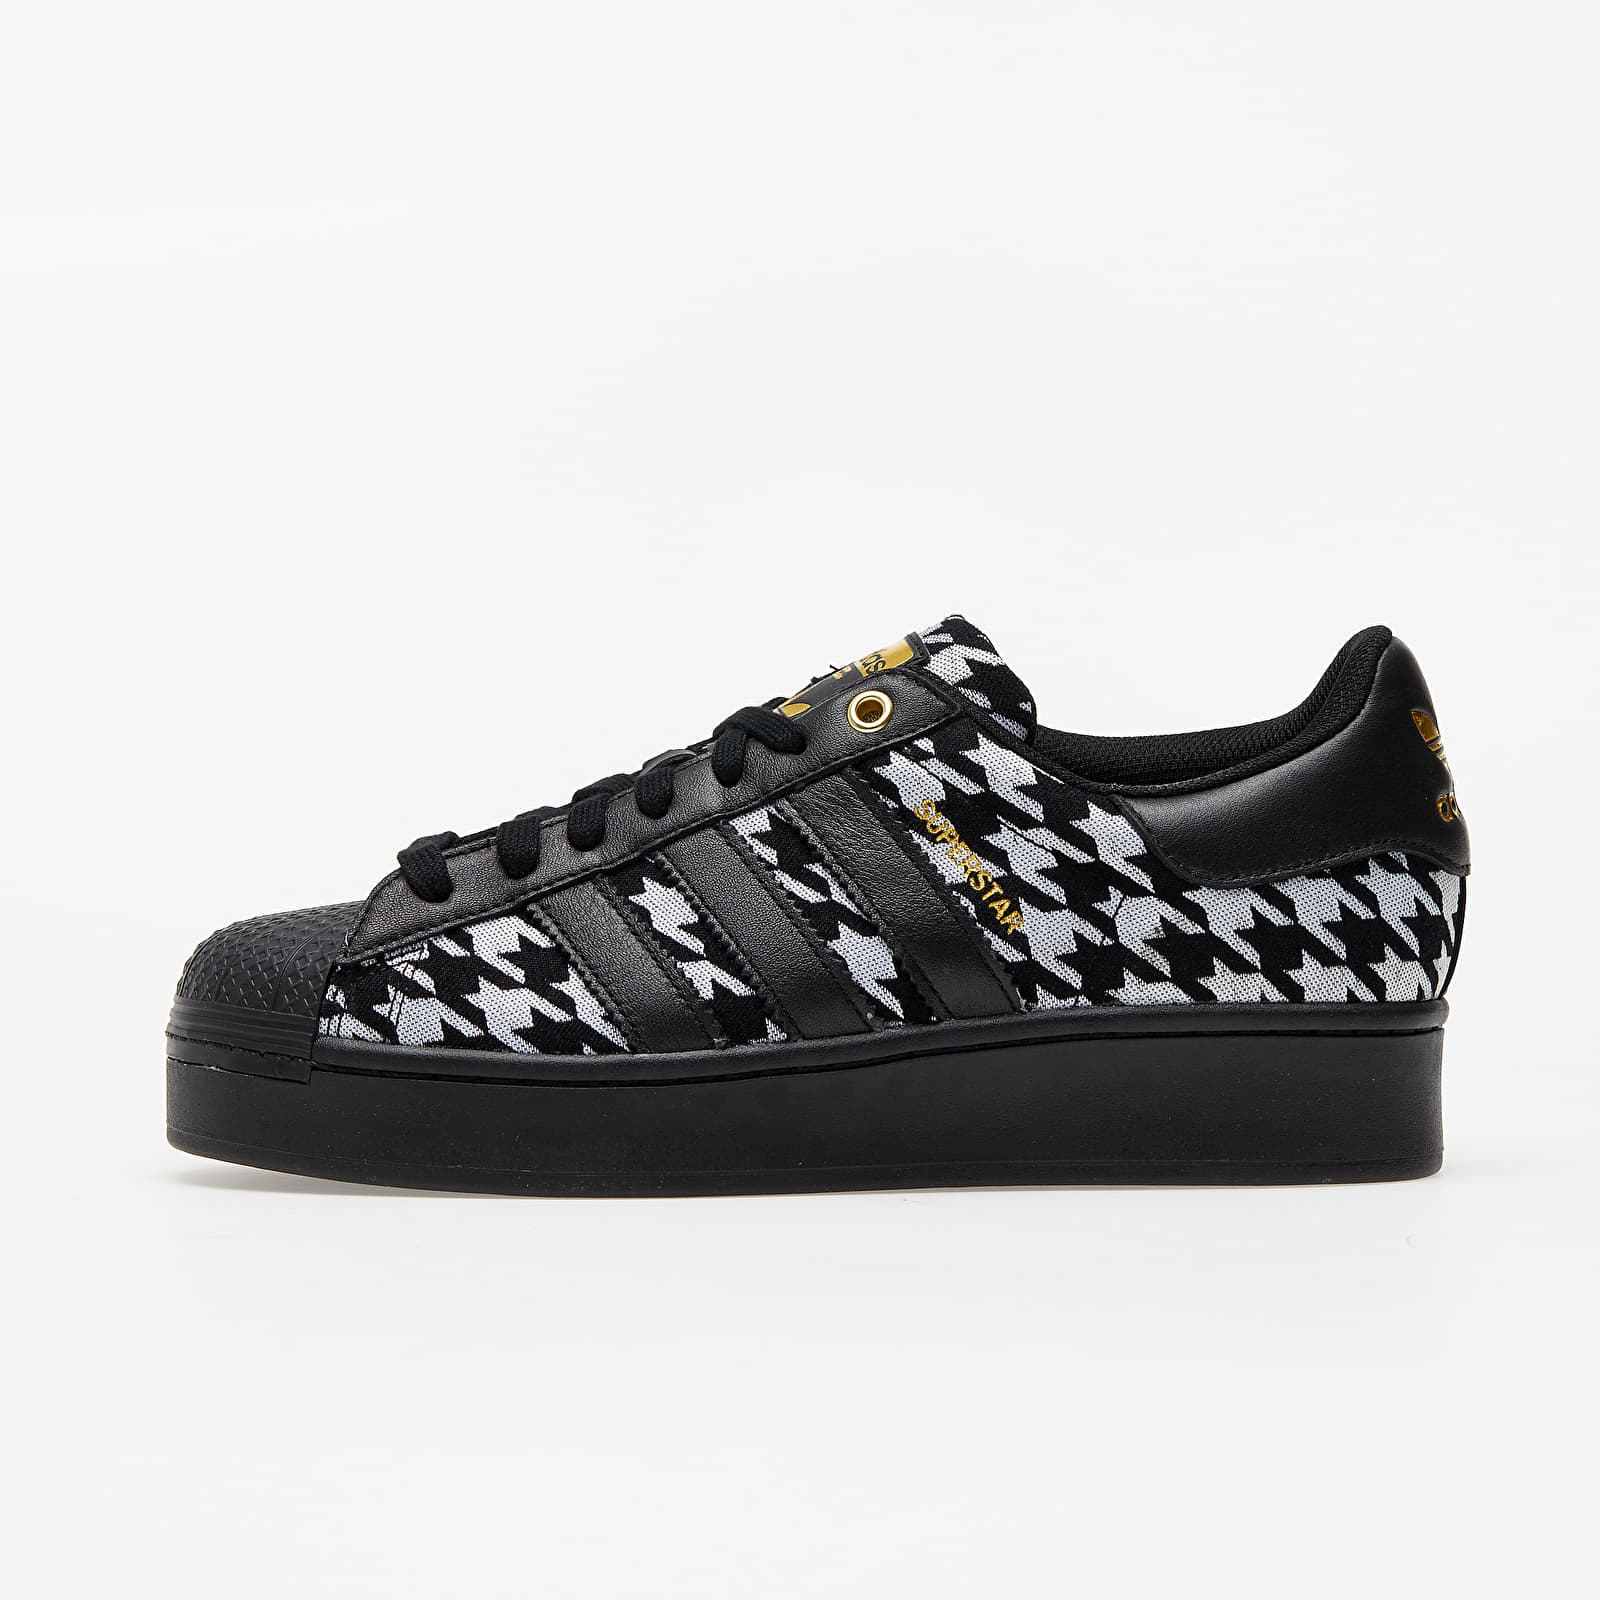 adidas Superstar Bold W Core Black/ Core Black/ Ftw White EUR 40